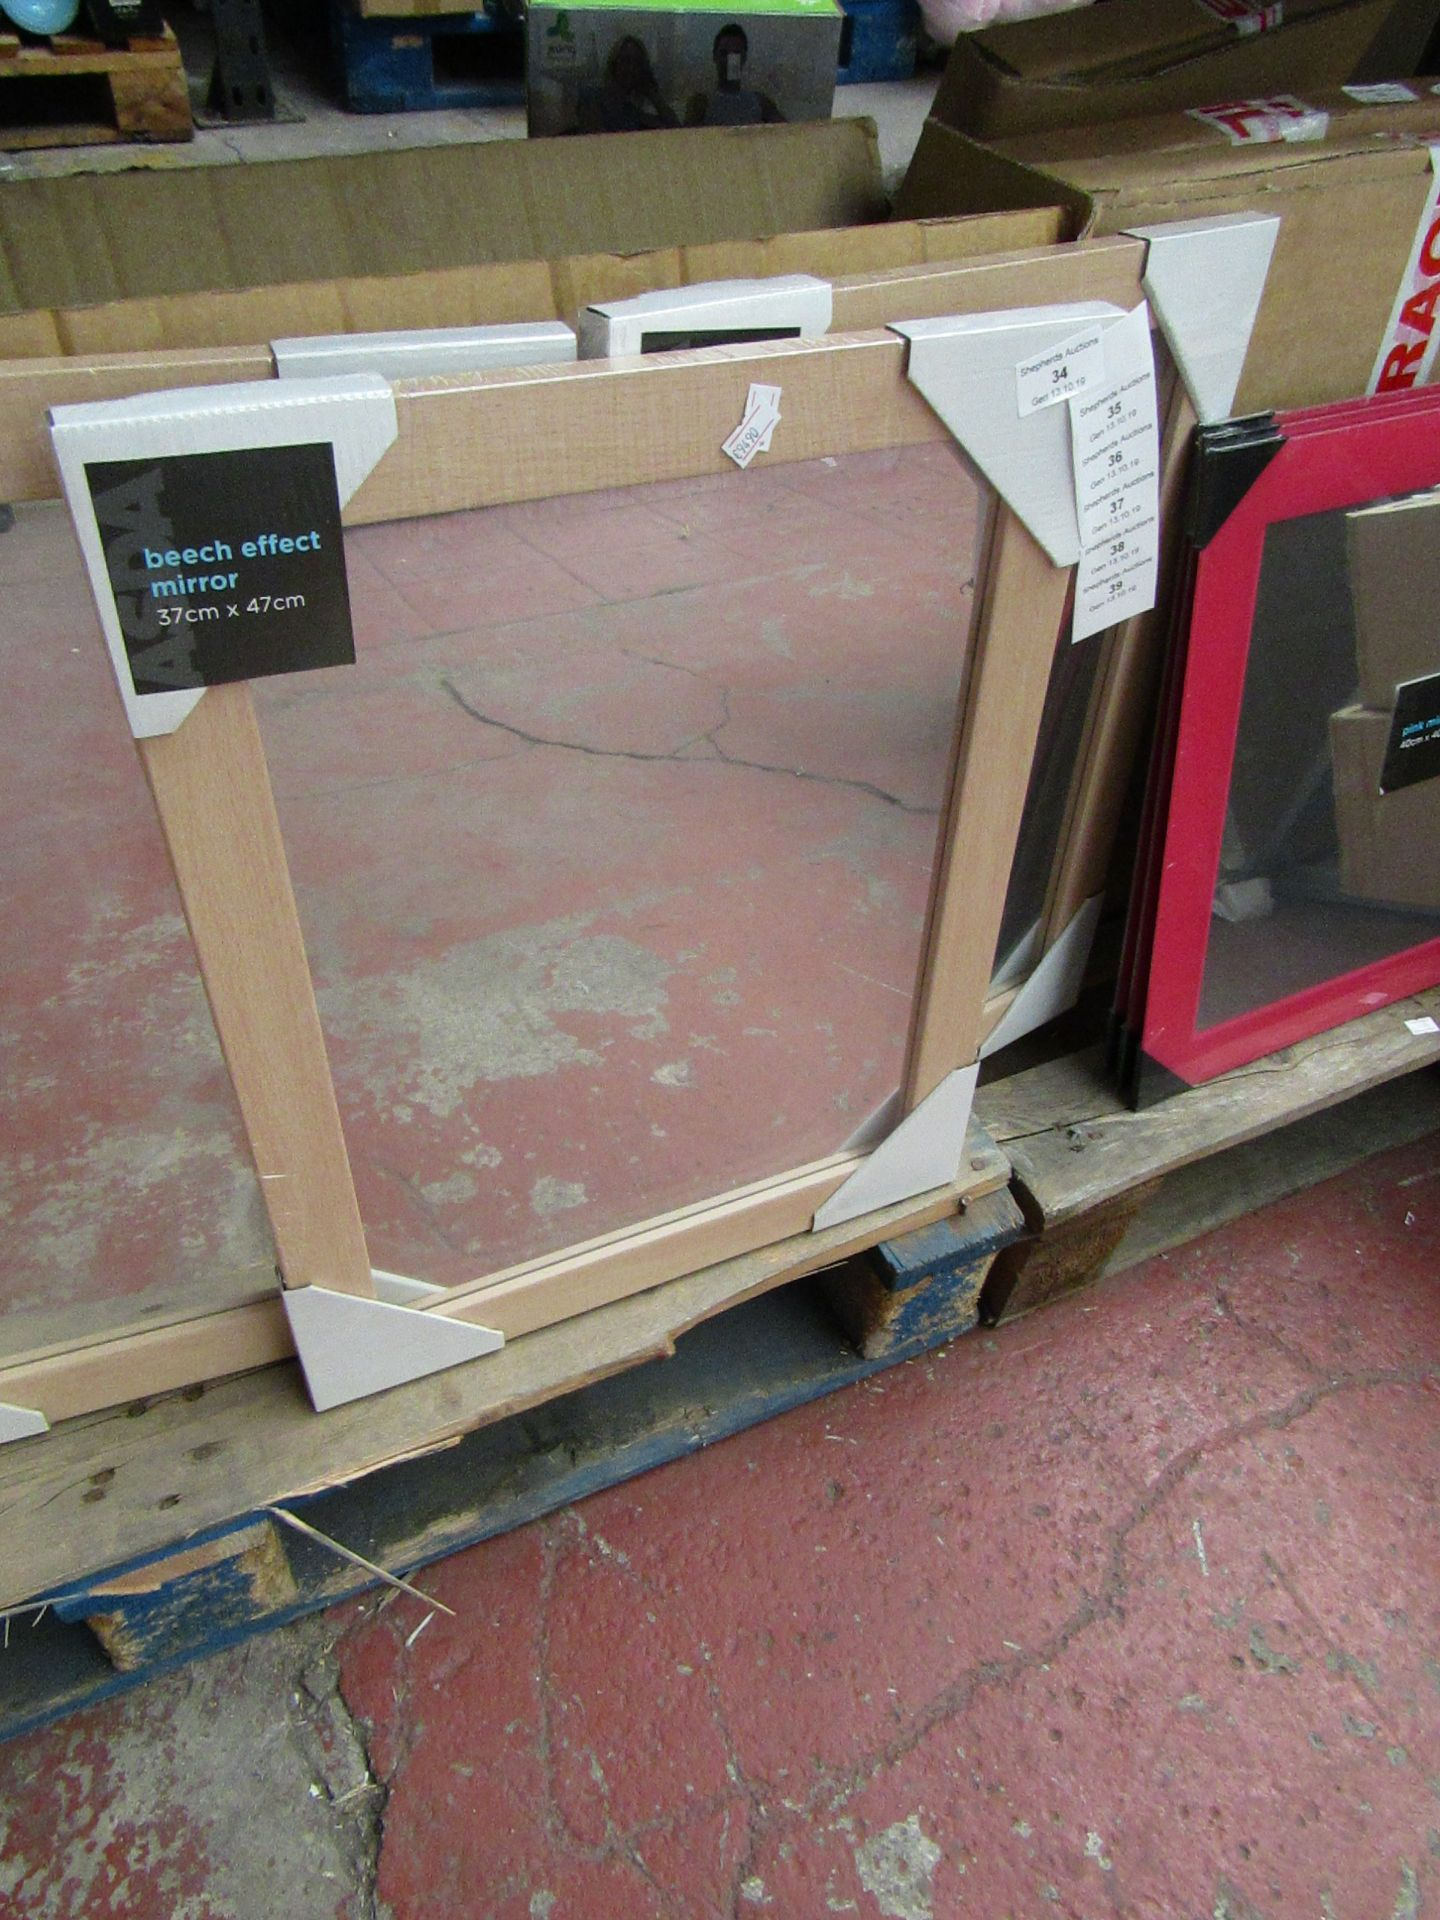 Lot 35 - Beech effect mirror, 37 x 47cm, new and packaged.